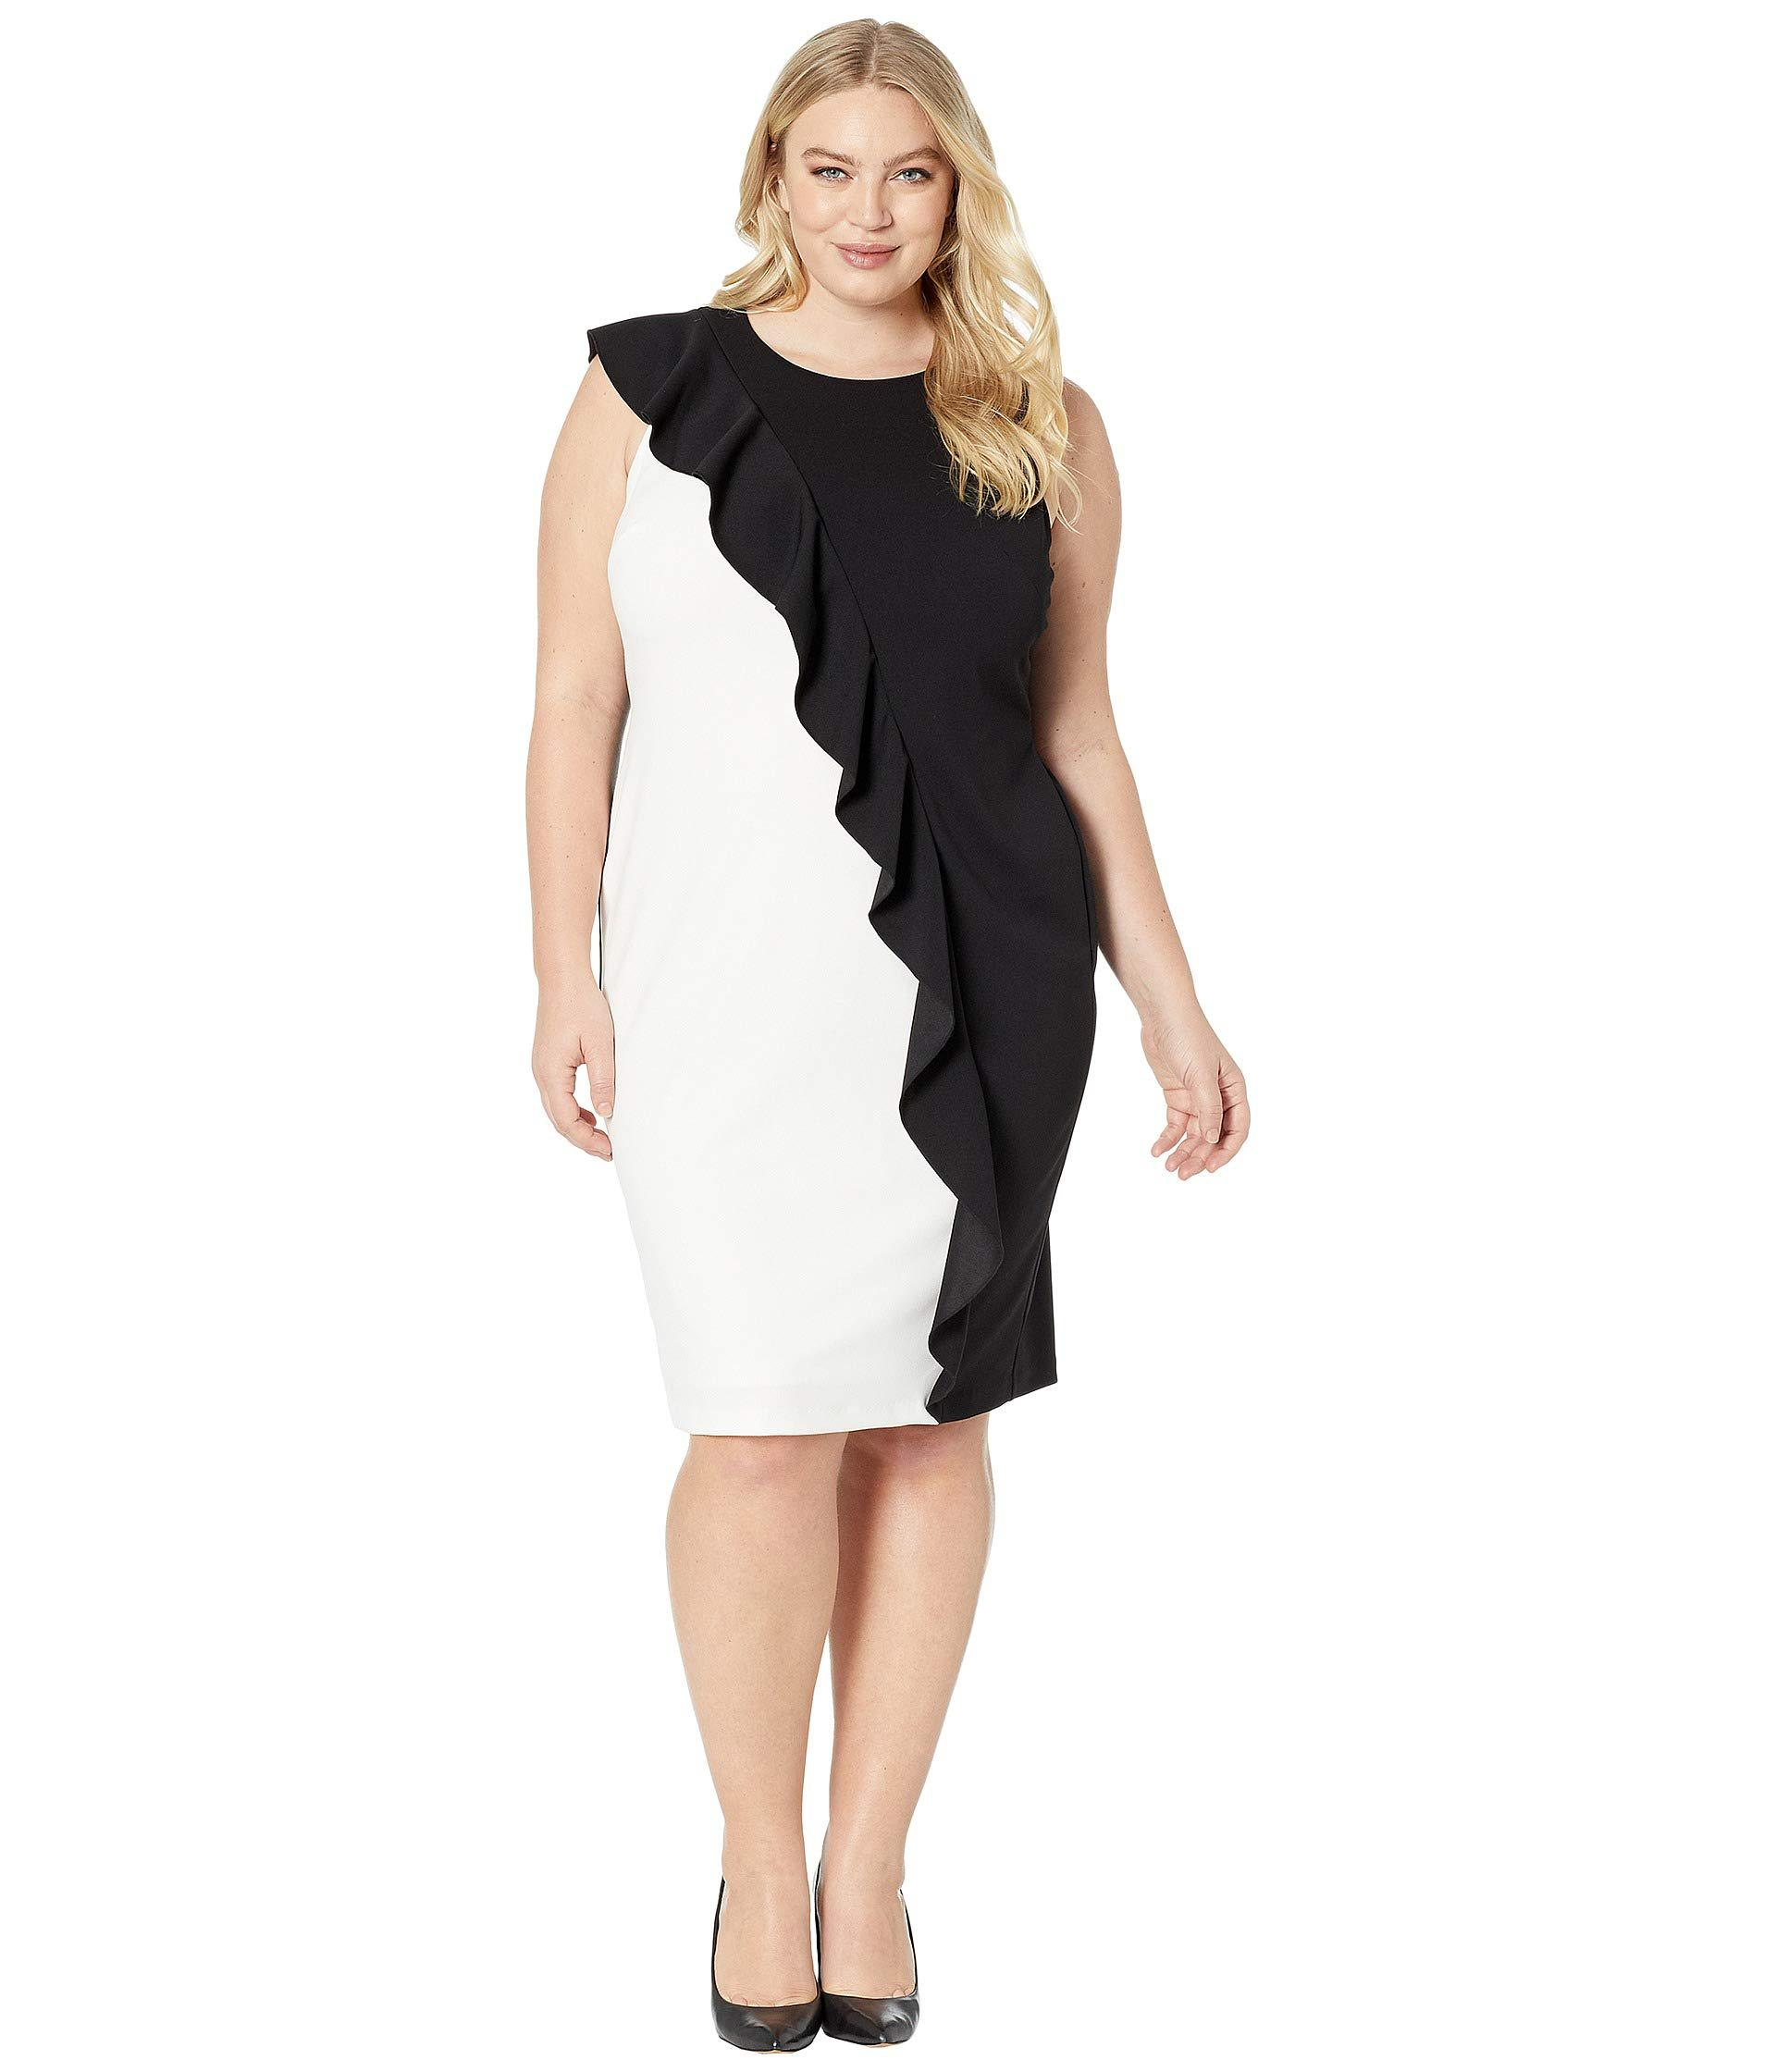 b819fa18978 Lyst - Adrianna Papell Plus Size Color Blocked Knit Crepe Sheath ...